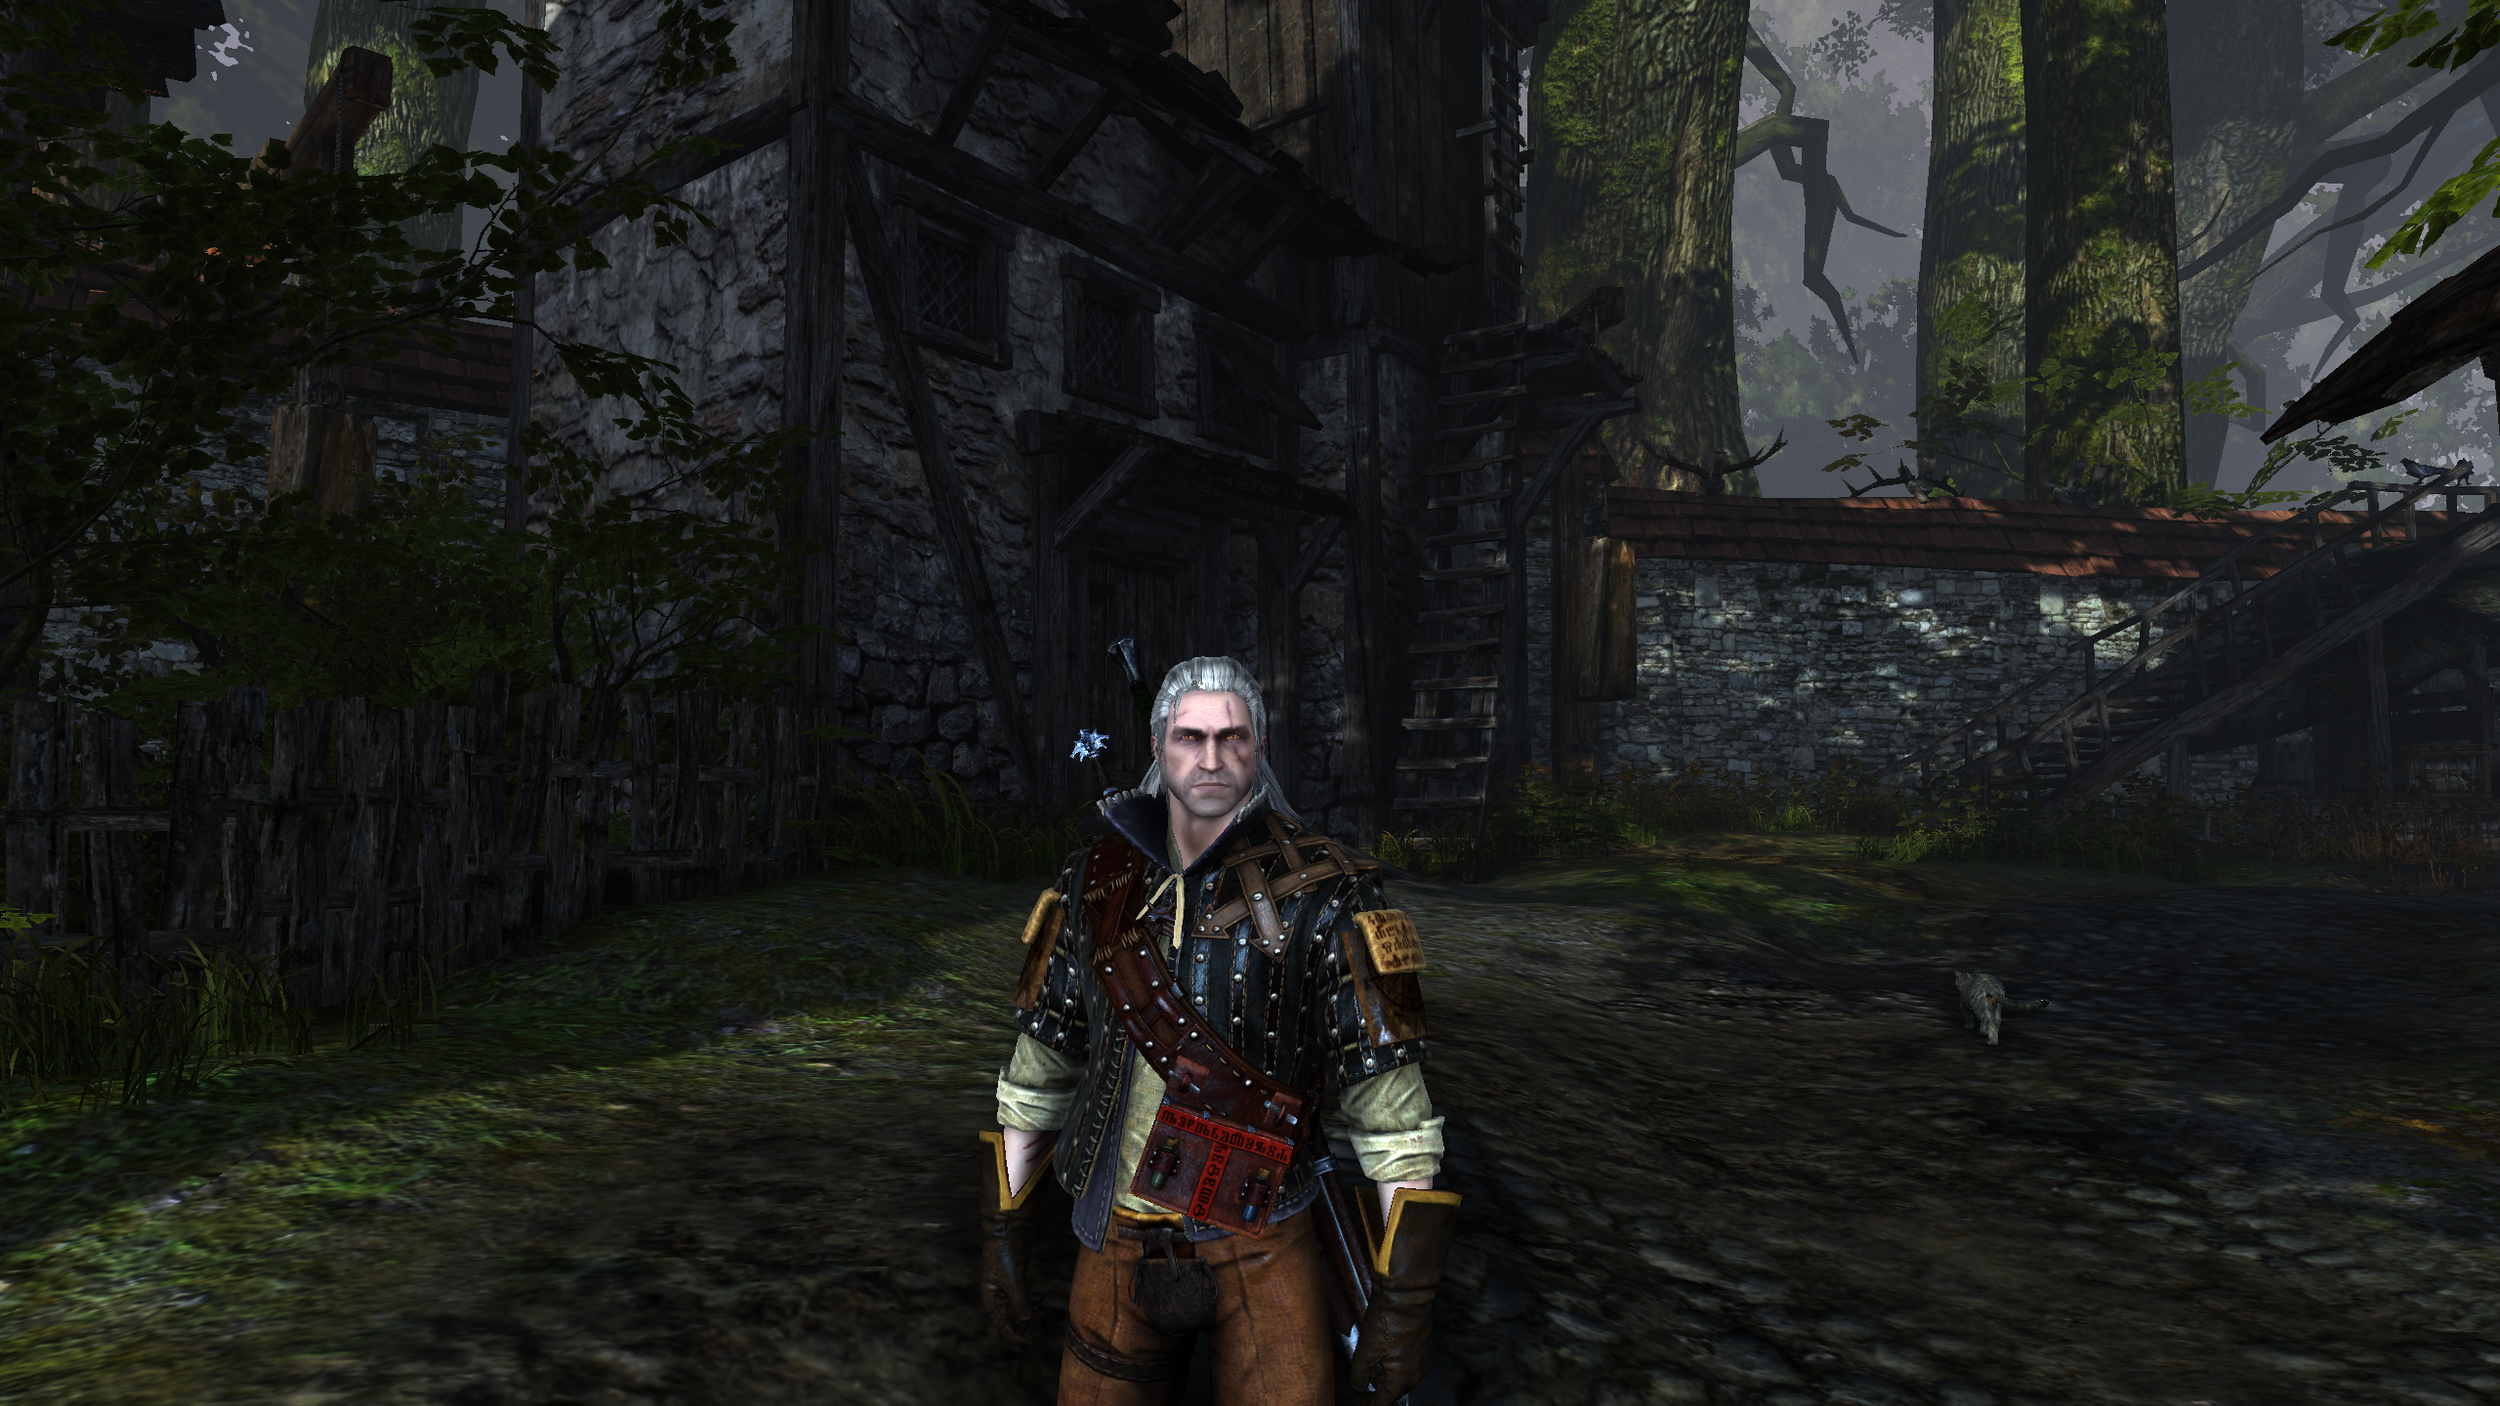 witcher2_2014_02_10_17_44_50_723.png